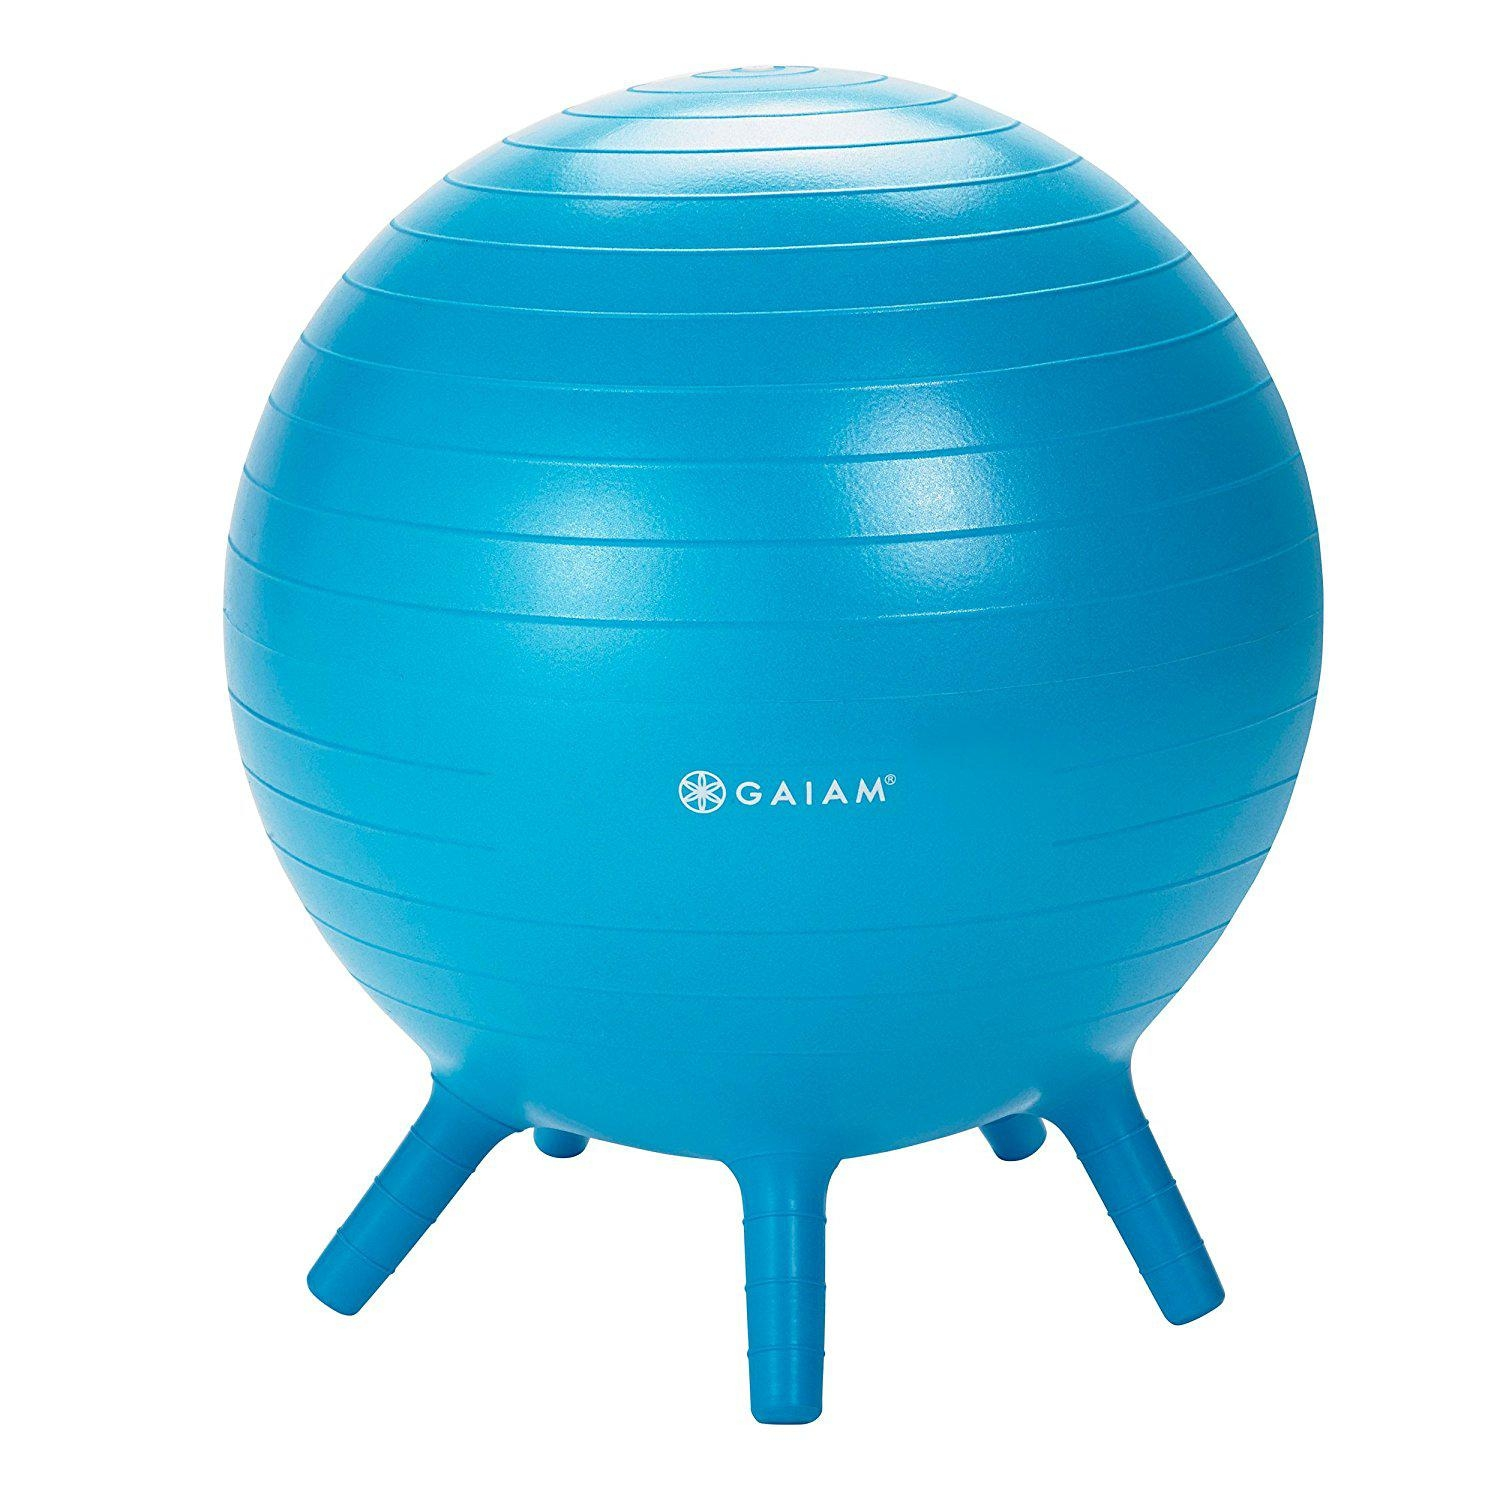 Gaiam Kids Stay N Play Children S Inflatable Balance Ball Best Offer Ineedthebestoffer Com